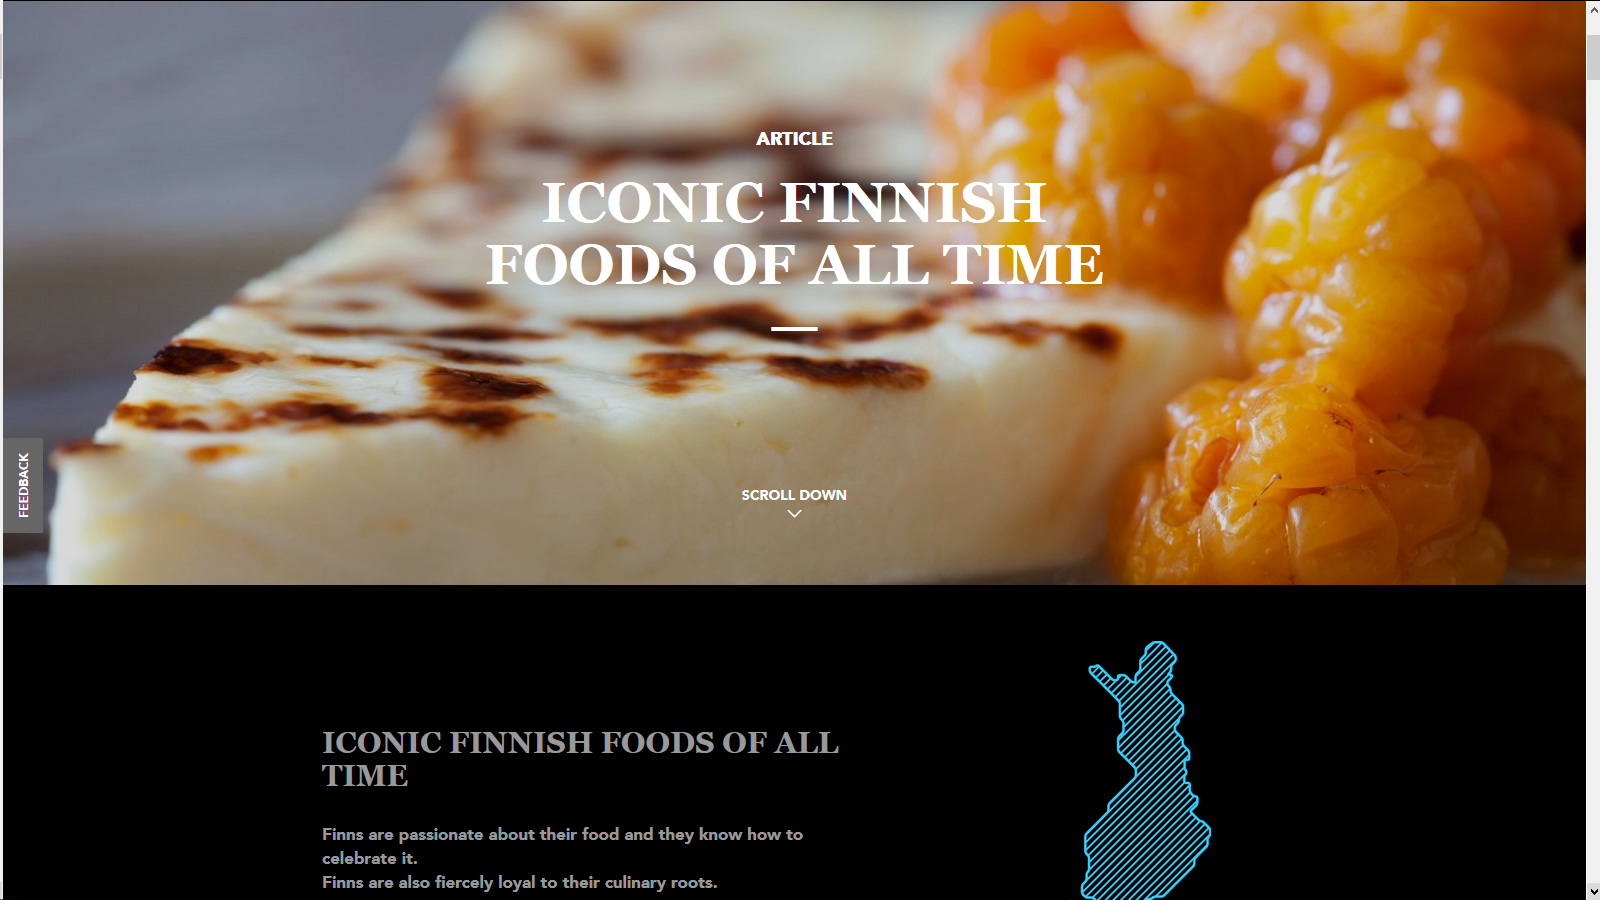 Iconic Finnish foods